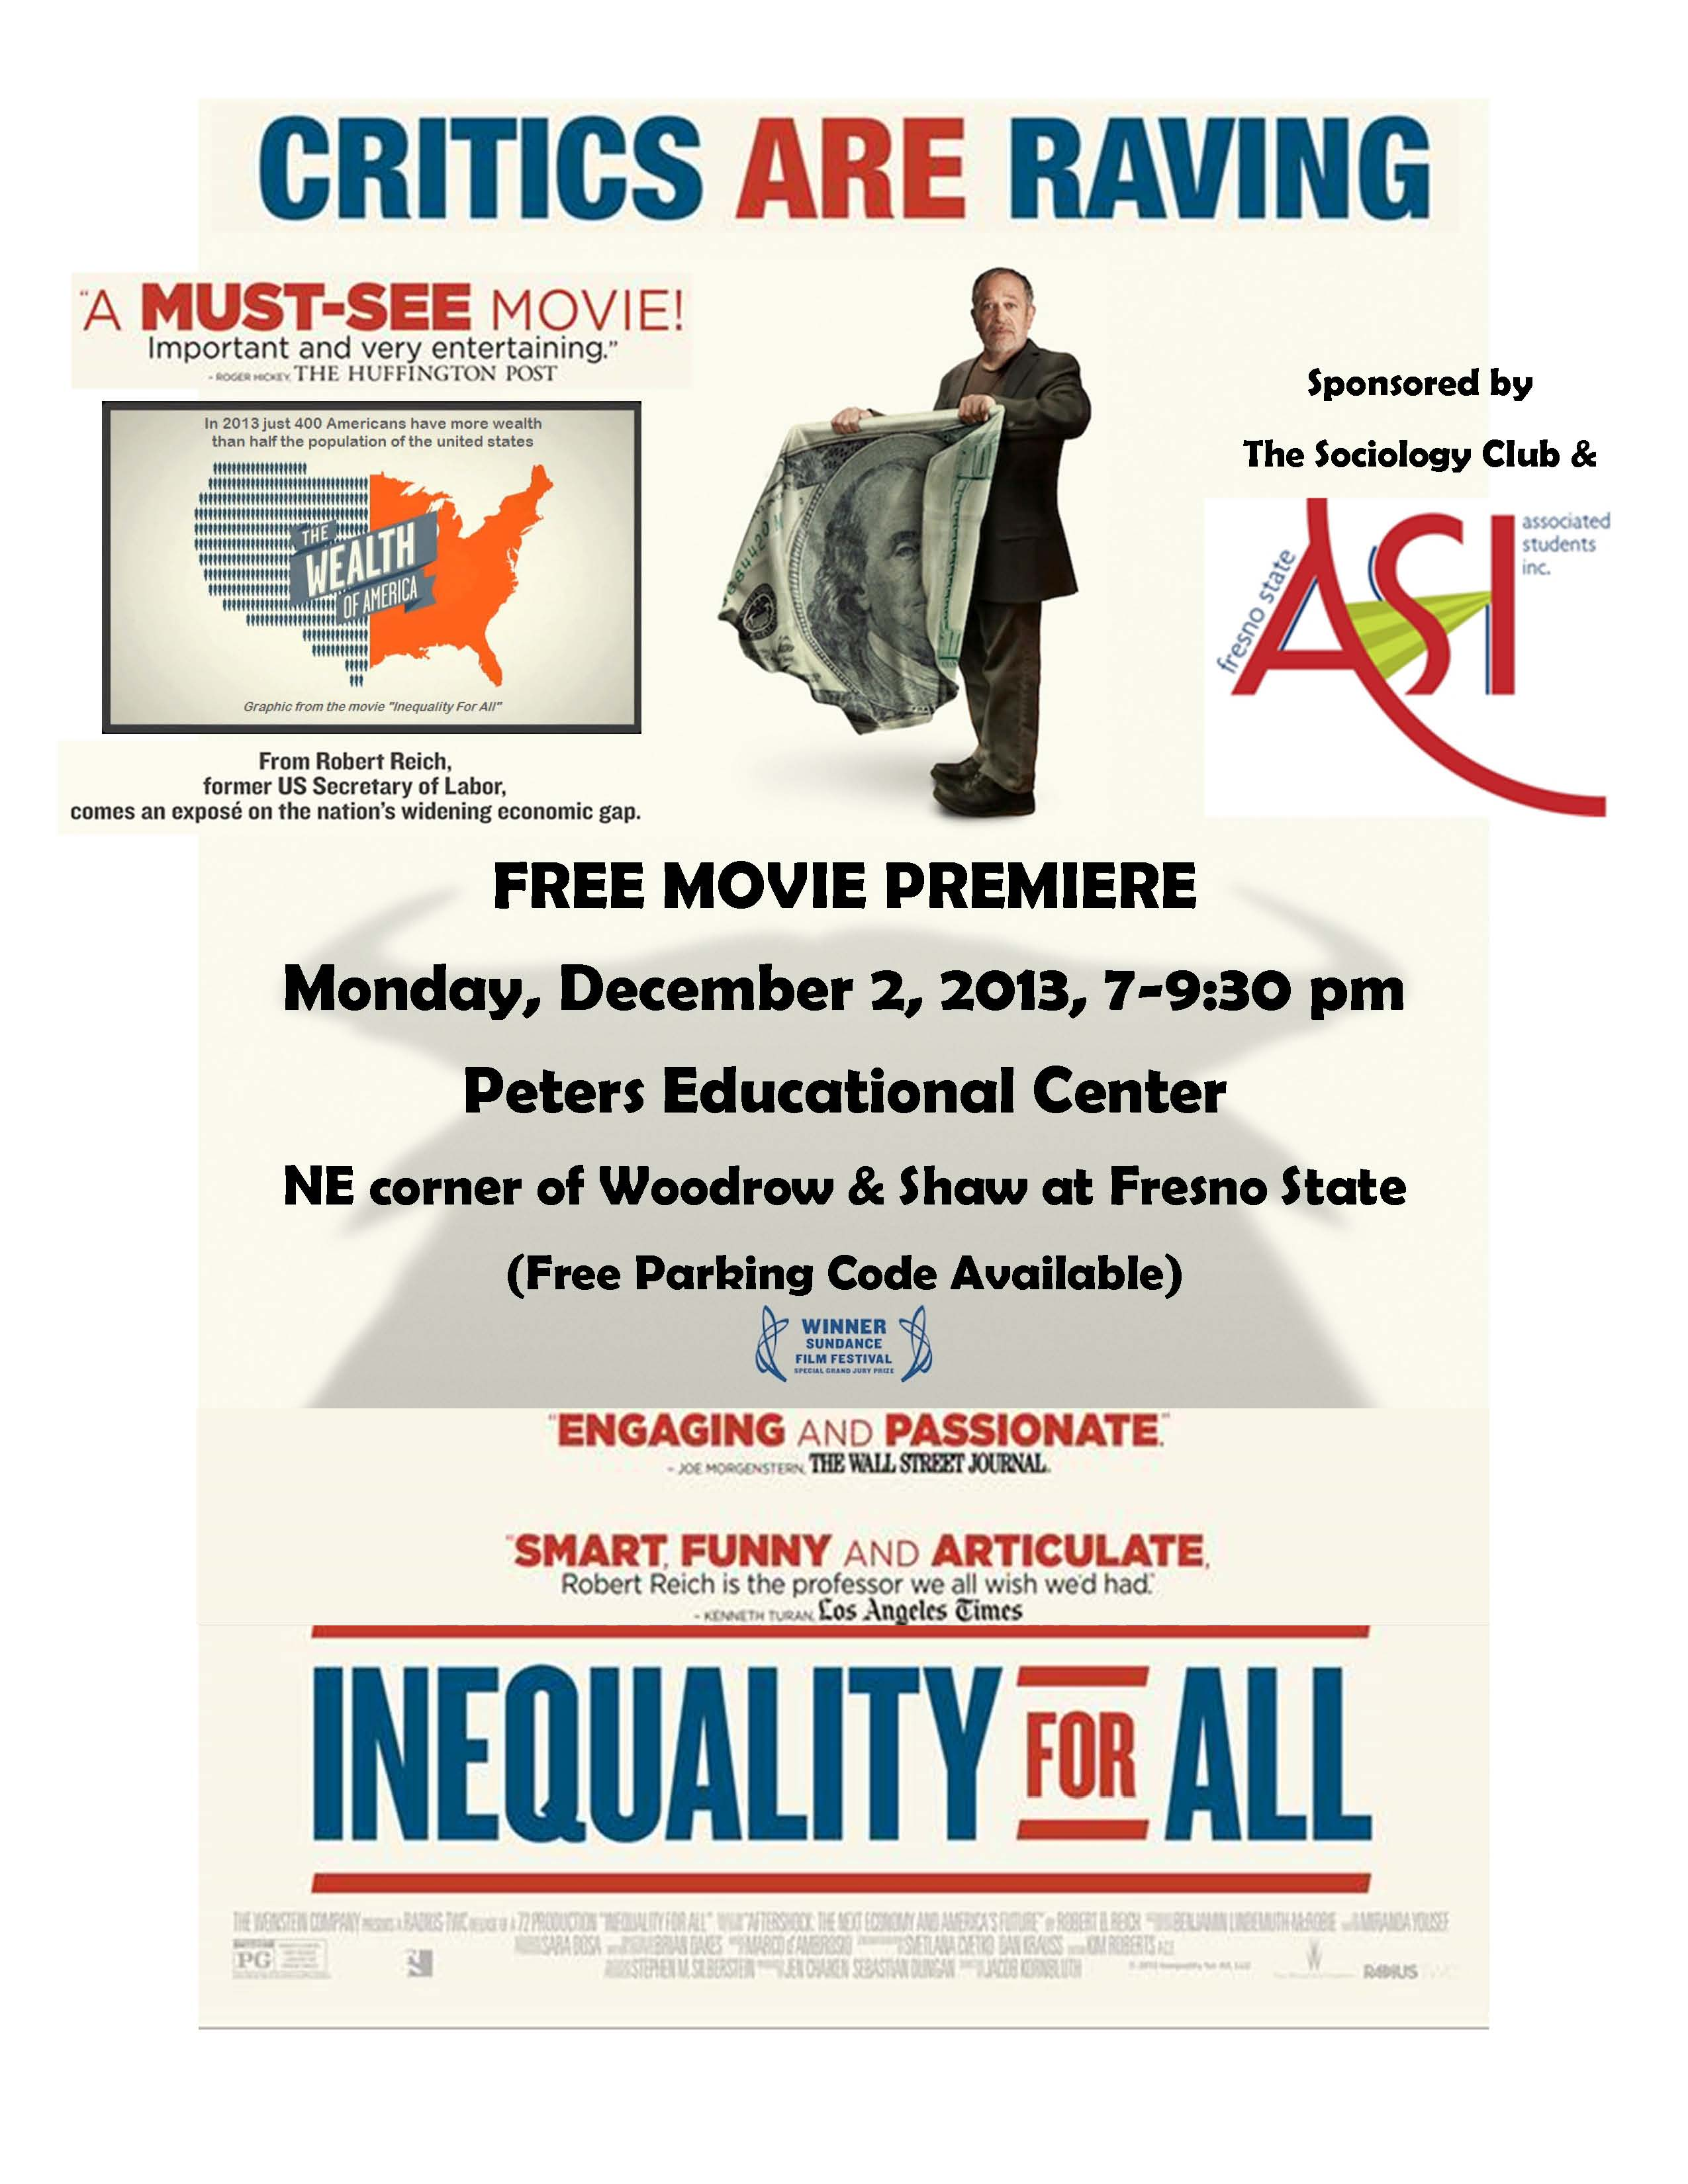 Inequality for All Flier 2013